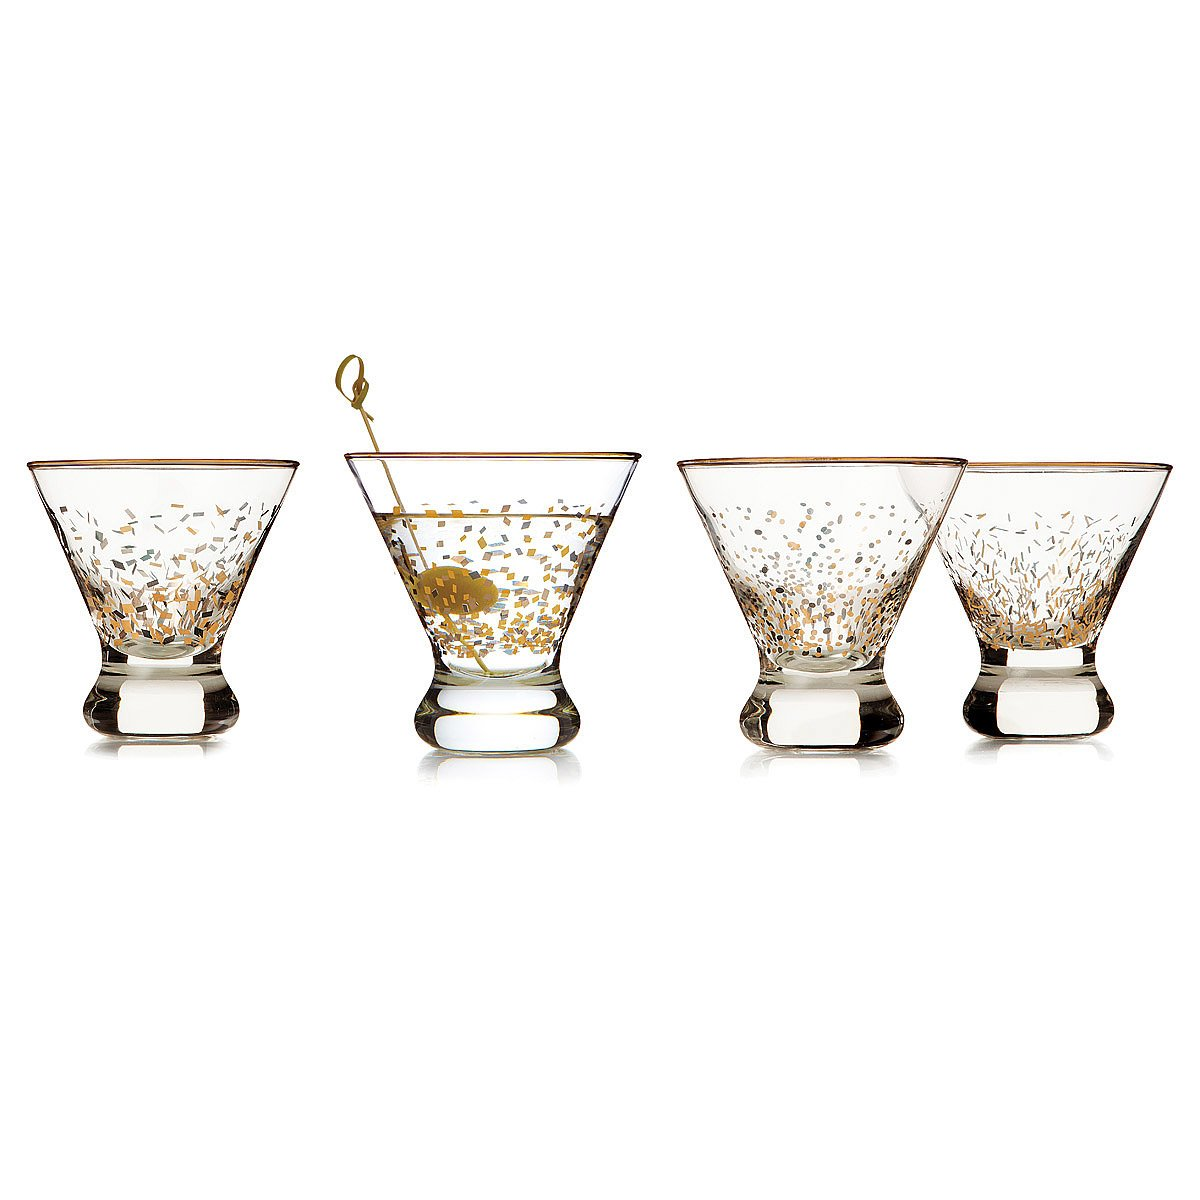 shaken martini glasses set of 4 1 thumbnail